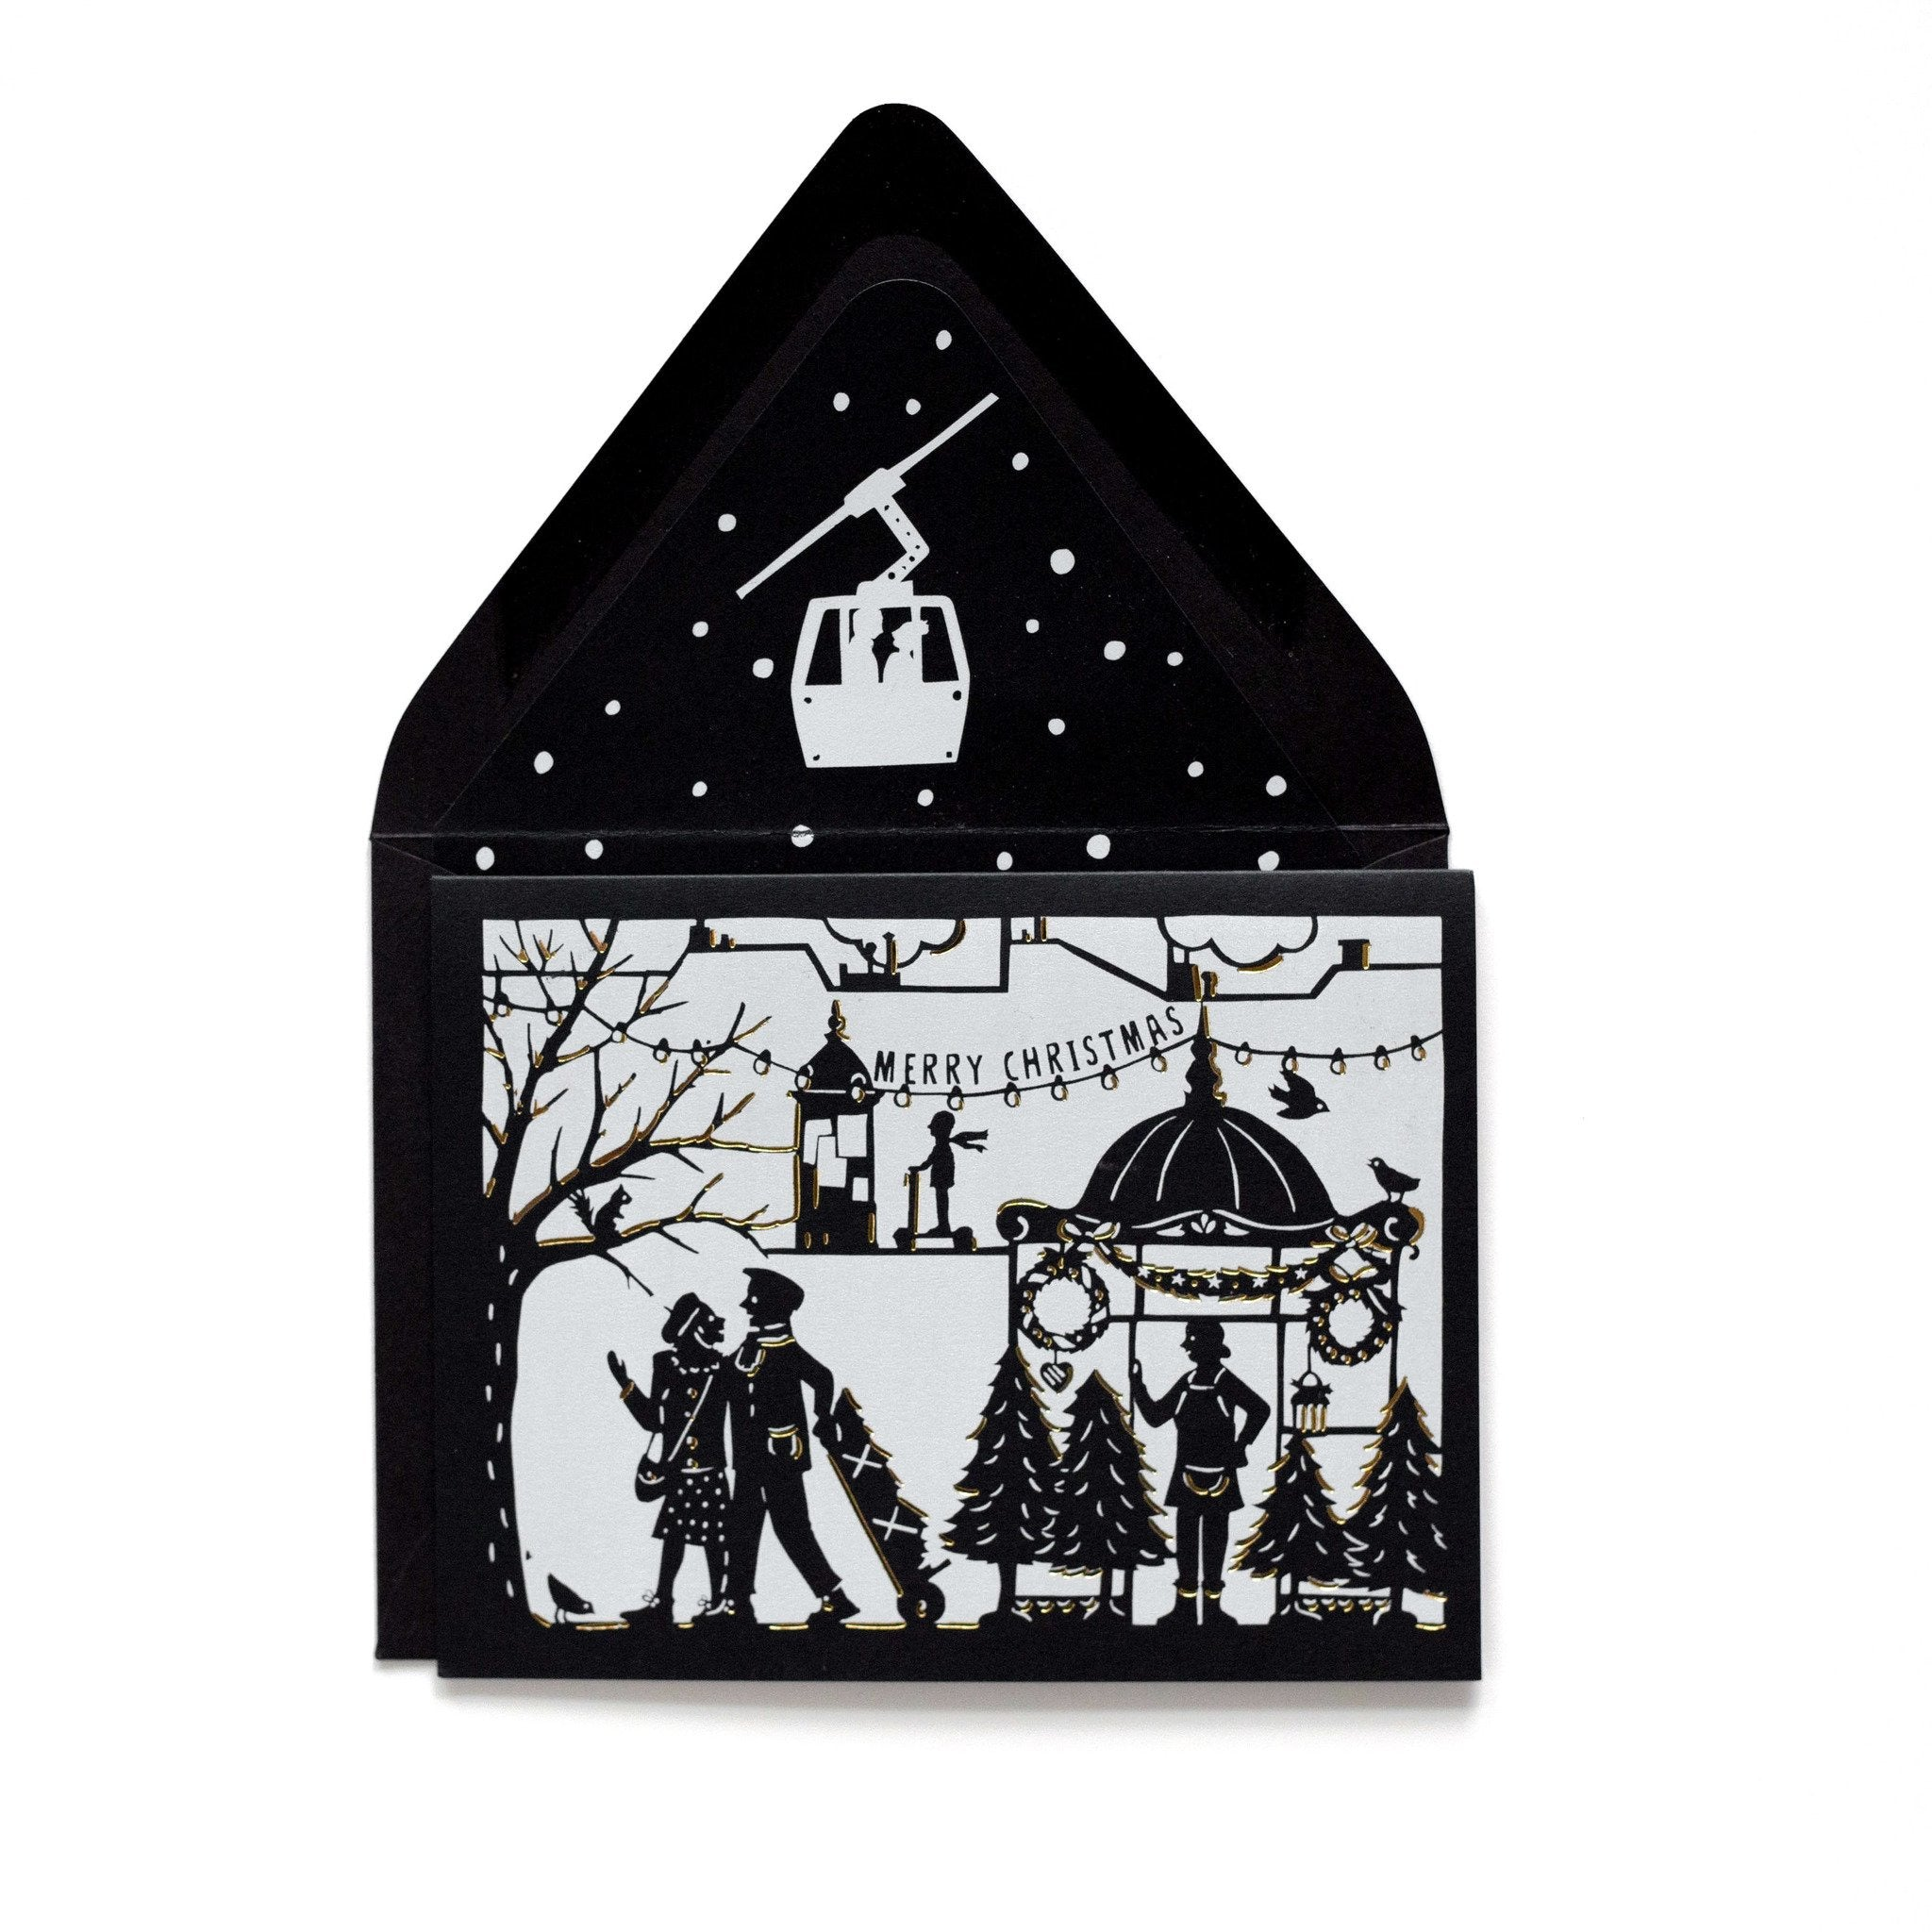 Charming Papercut Christmas Tree Market Holiday Card w/ Envelope - The First Snow